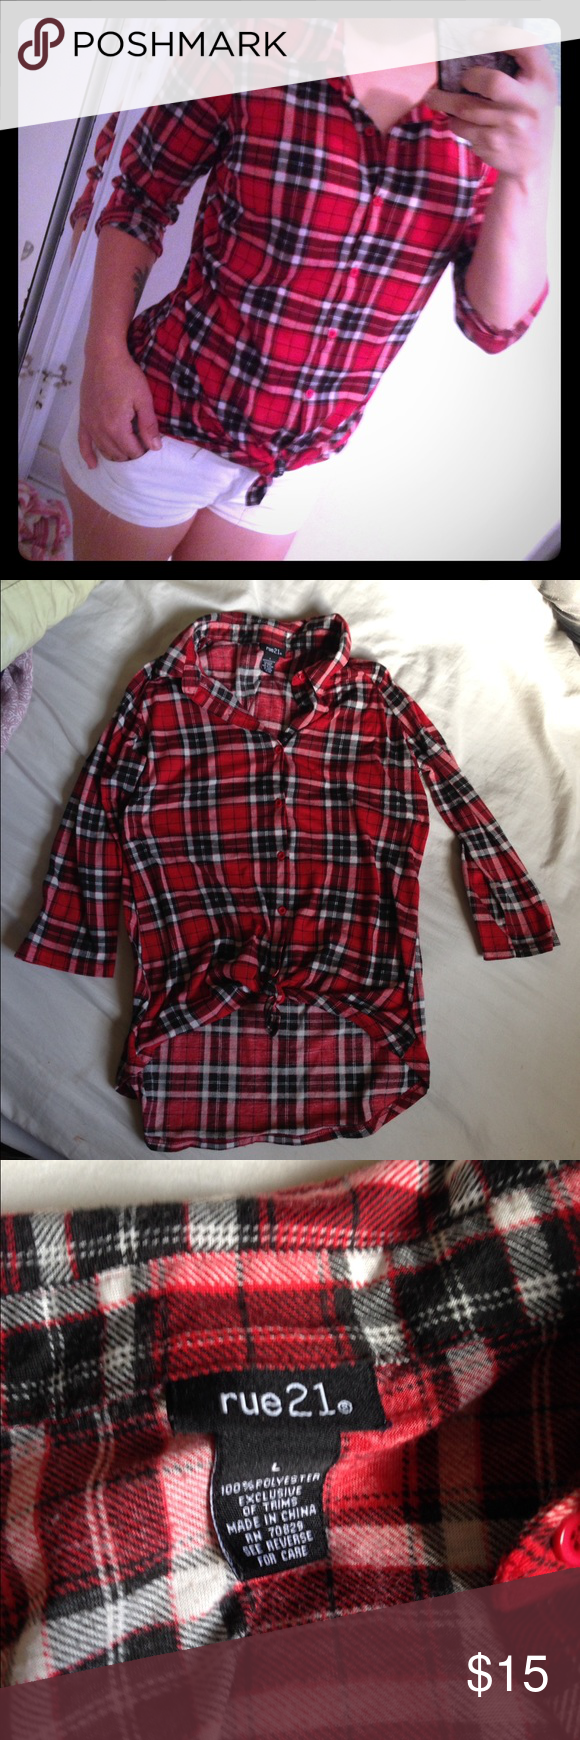 Rue21 flannel half sleeve💕 Size large fits medium great condition , fast shipping with a free gift 🎁 💕 open to offers Rue21 Tops Tees - Long Sleeve